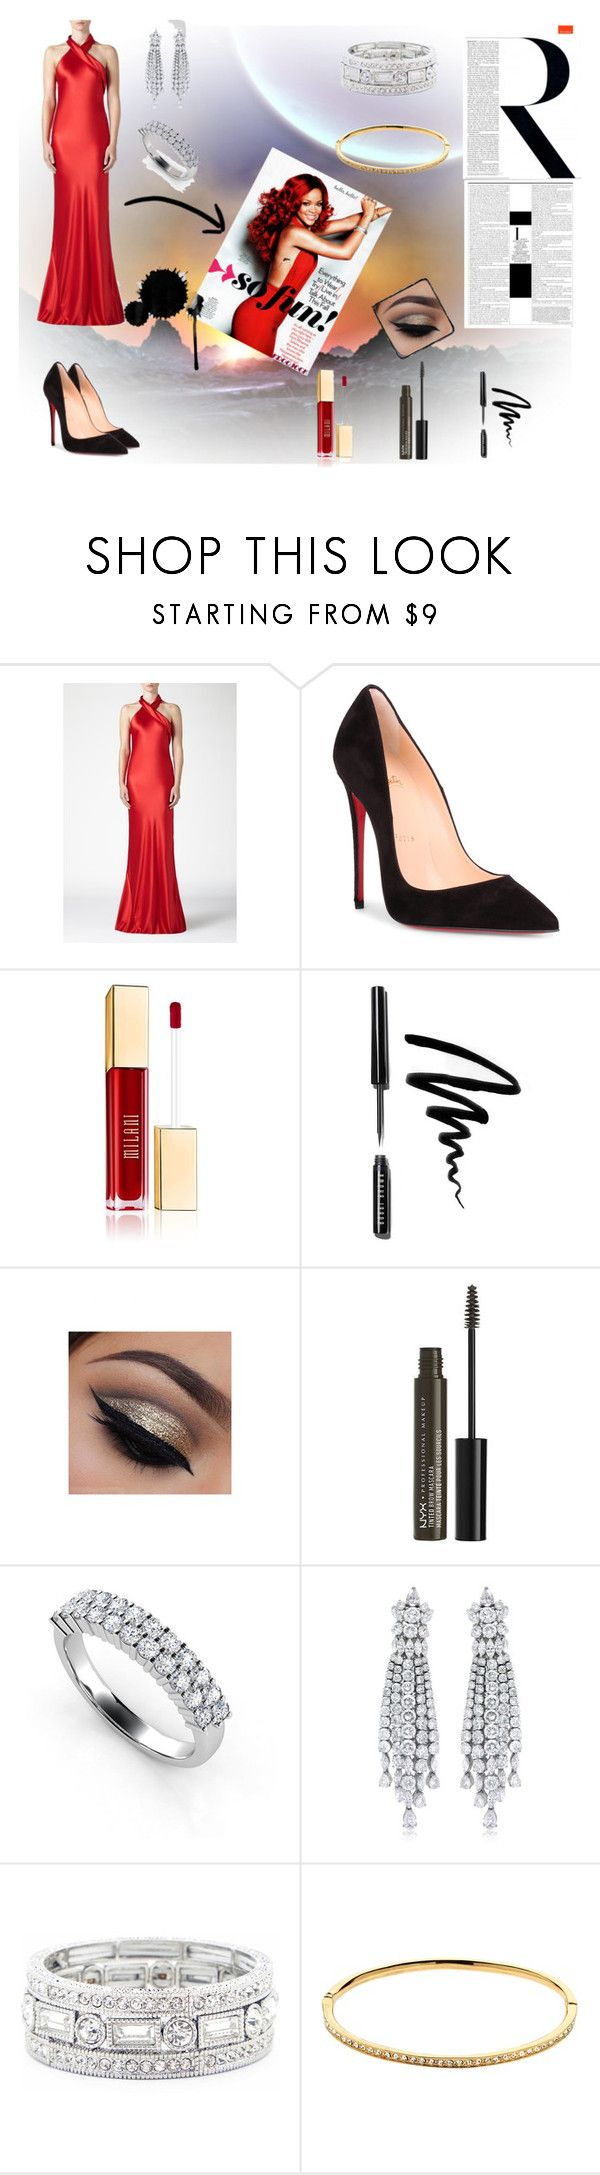 """Red Power-Rihanna Look"" by nermin-truma ❤ liked on Polyvore featuring Galvan, Christian Louboutin, Bobbi Brown Cosmetics, NYX, Ultimate, Sole Society and Melissa Odabash"